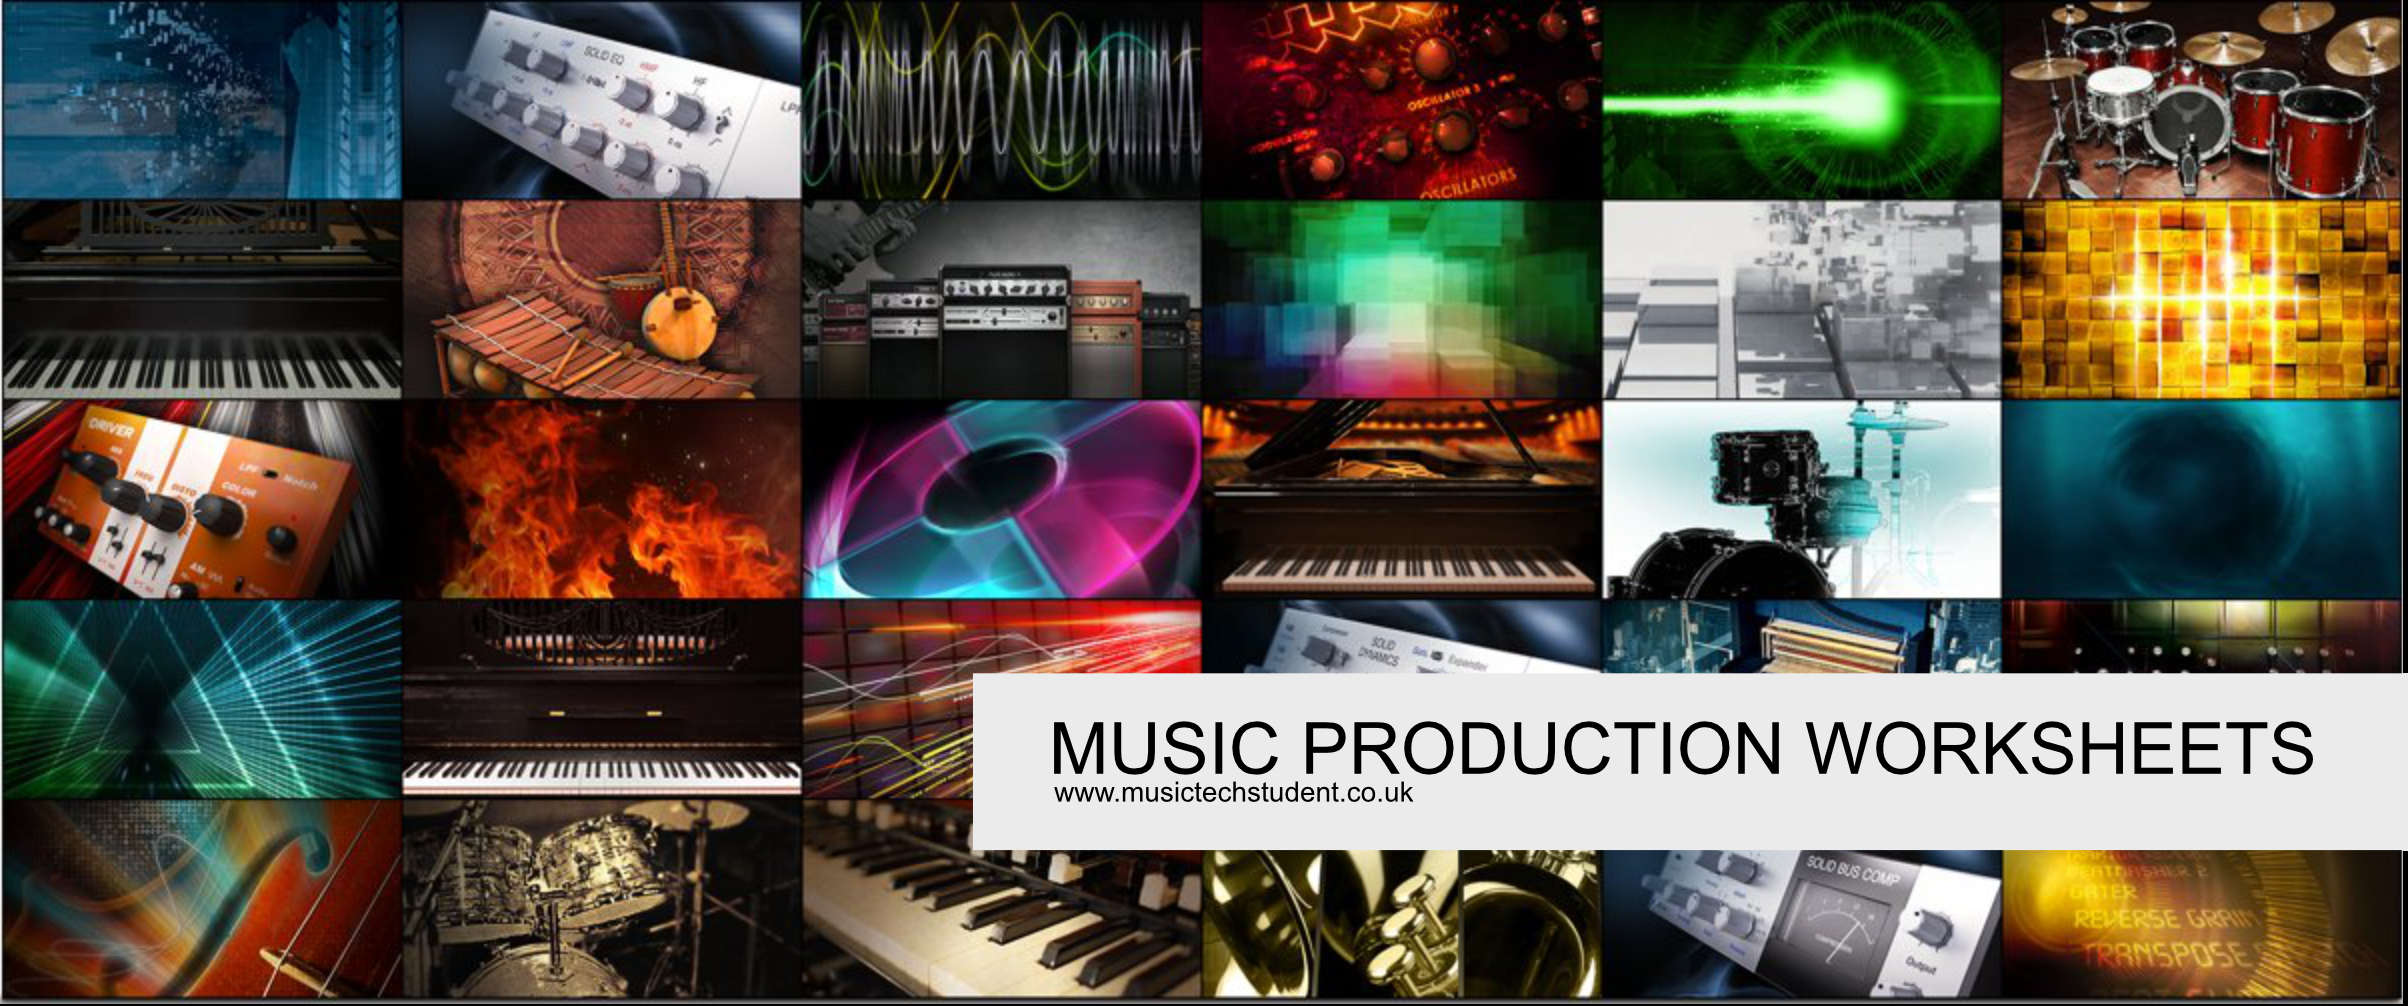 Music Production Worksheets